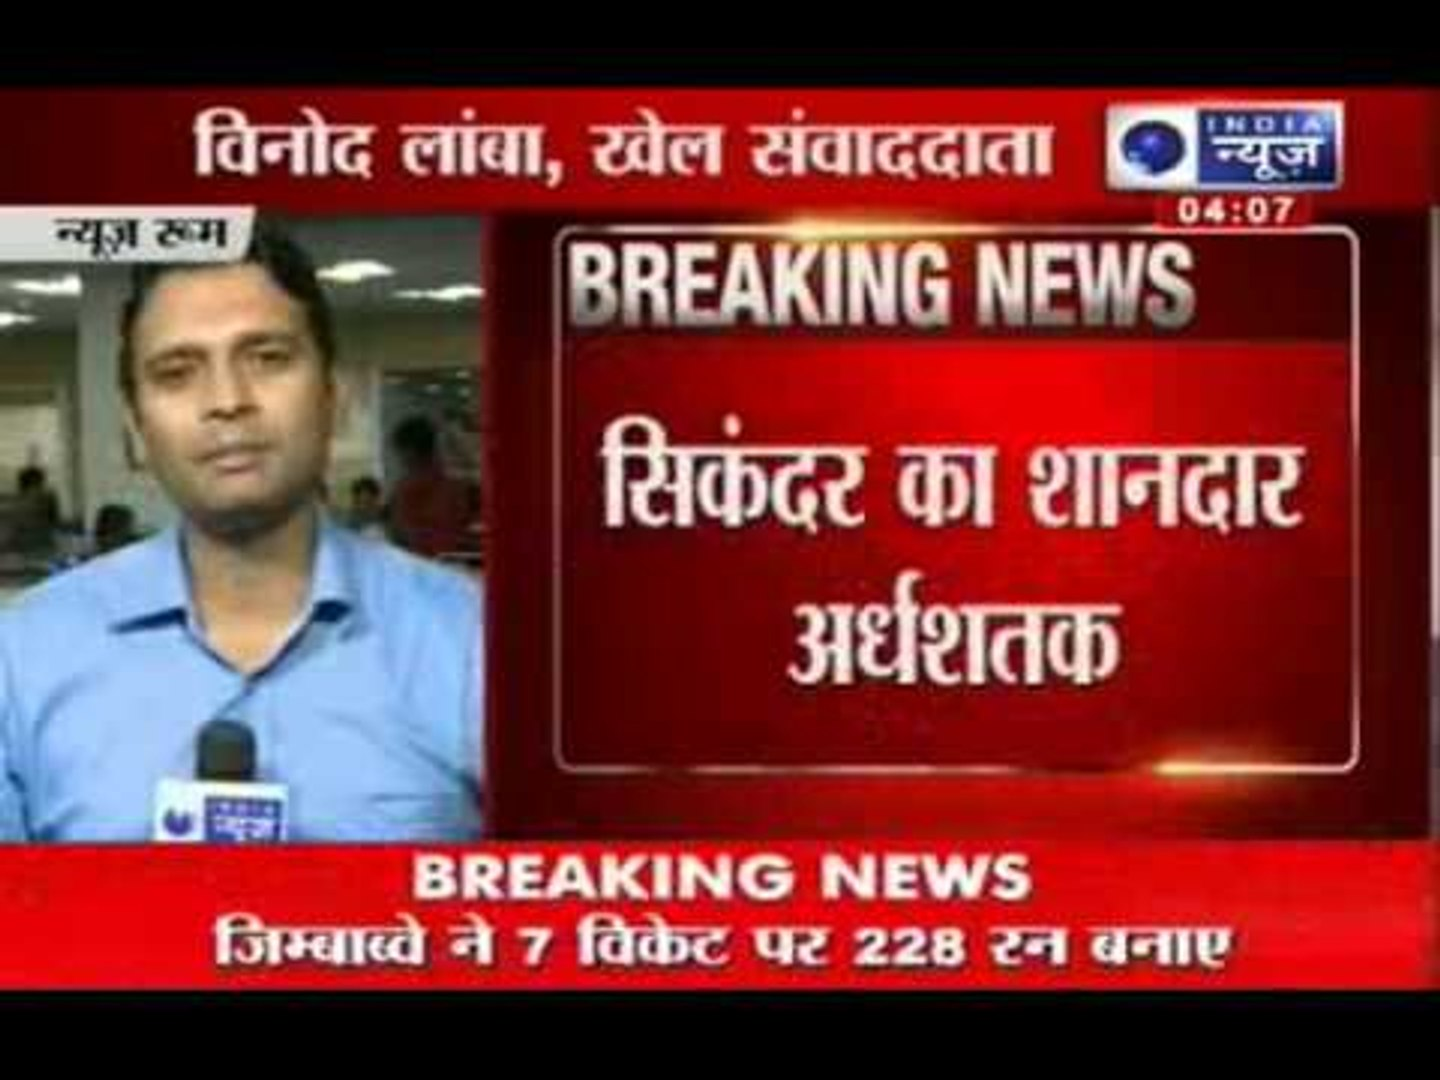 India News: India need 229 runs to win 1st ODI